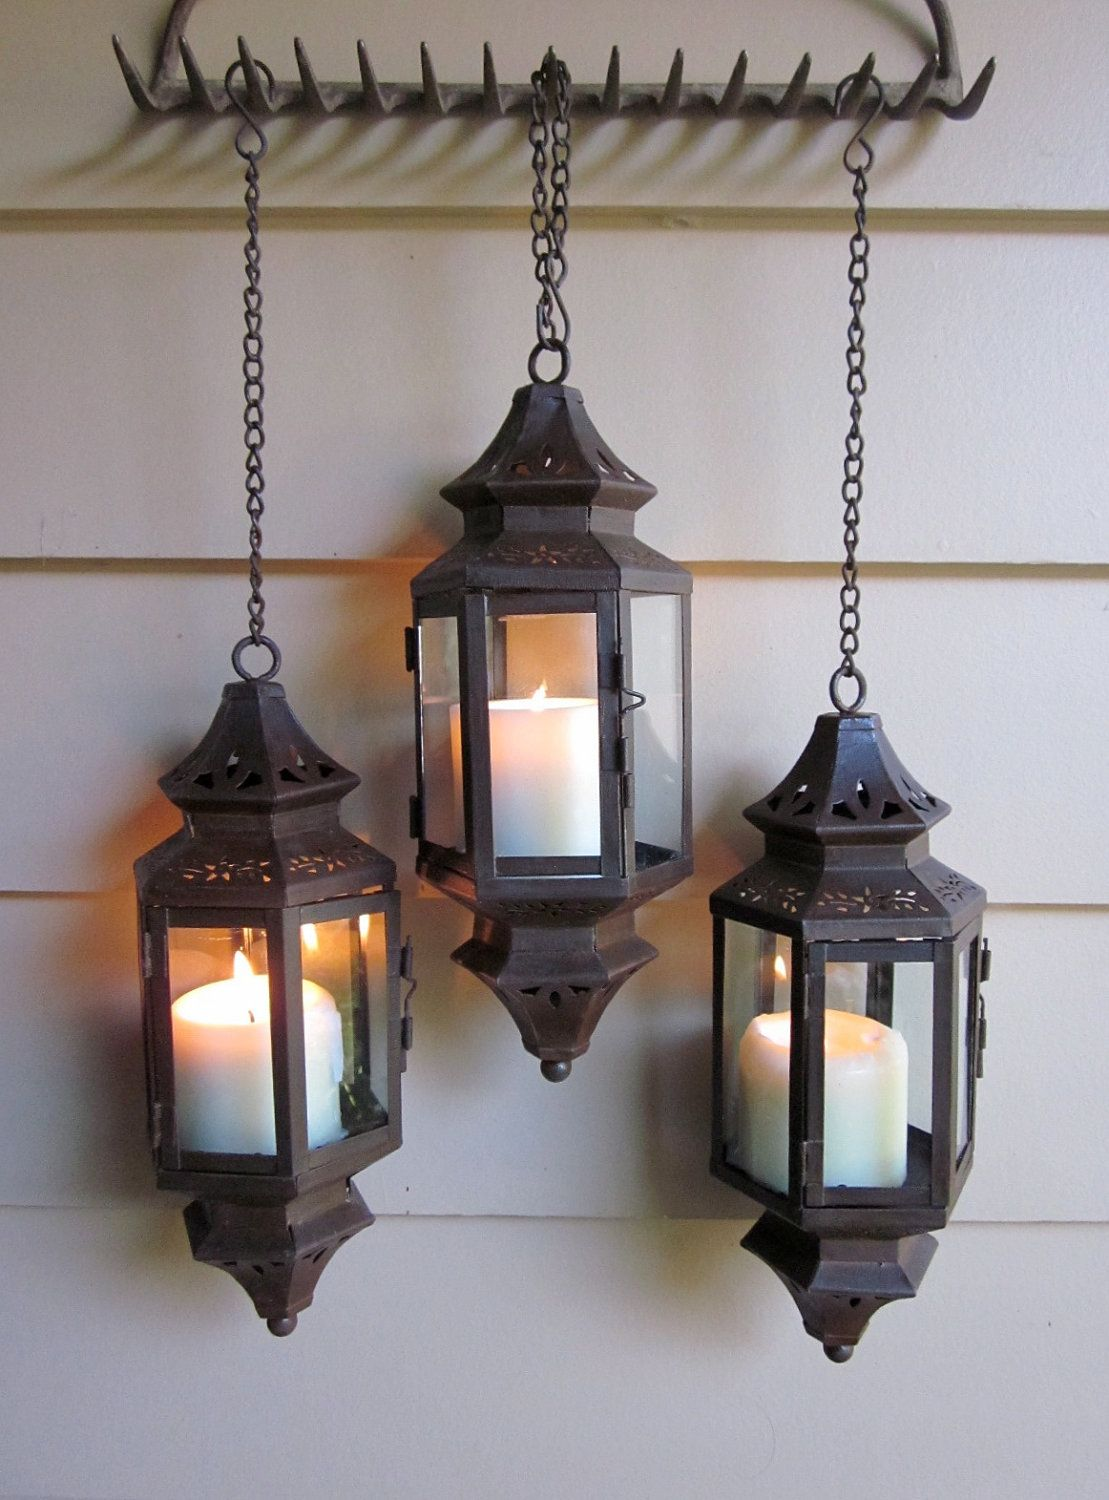 Hanging outdoor candle lanterns for patio - Rust Patina Hanging Lantern For Wedding Pathway Patio Wall Entrance Or Home